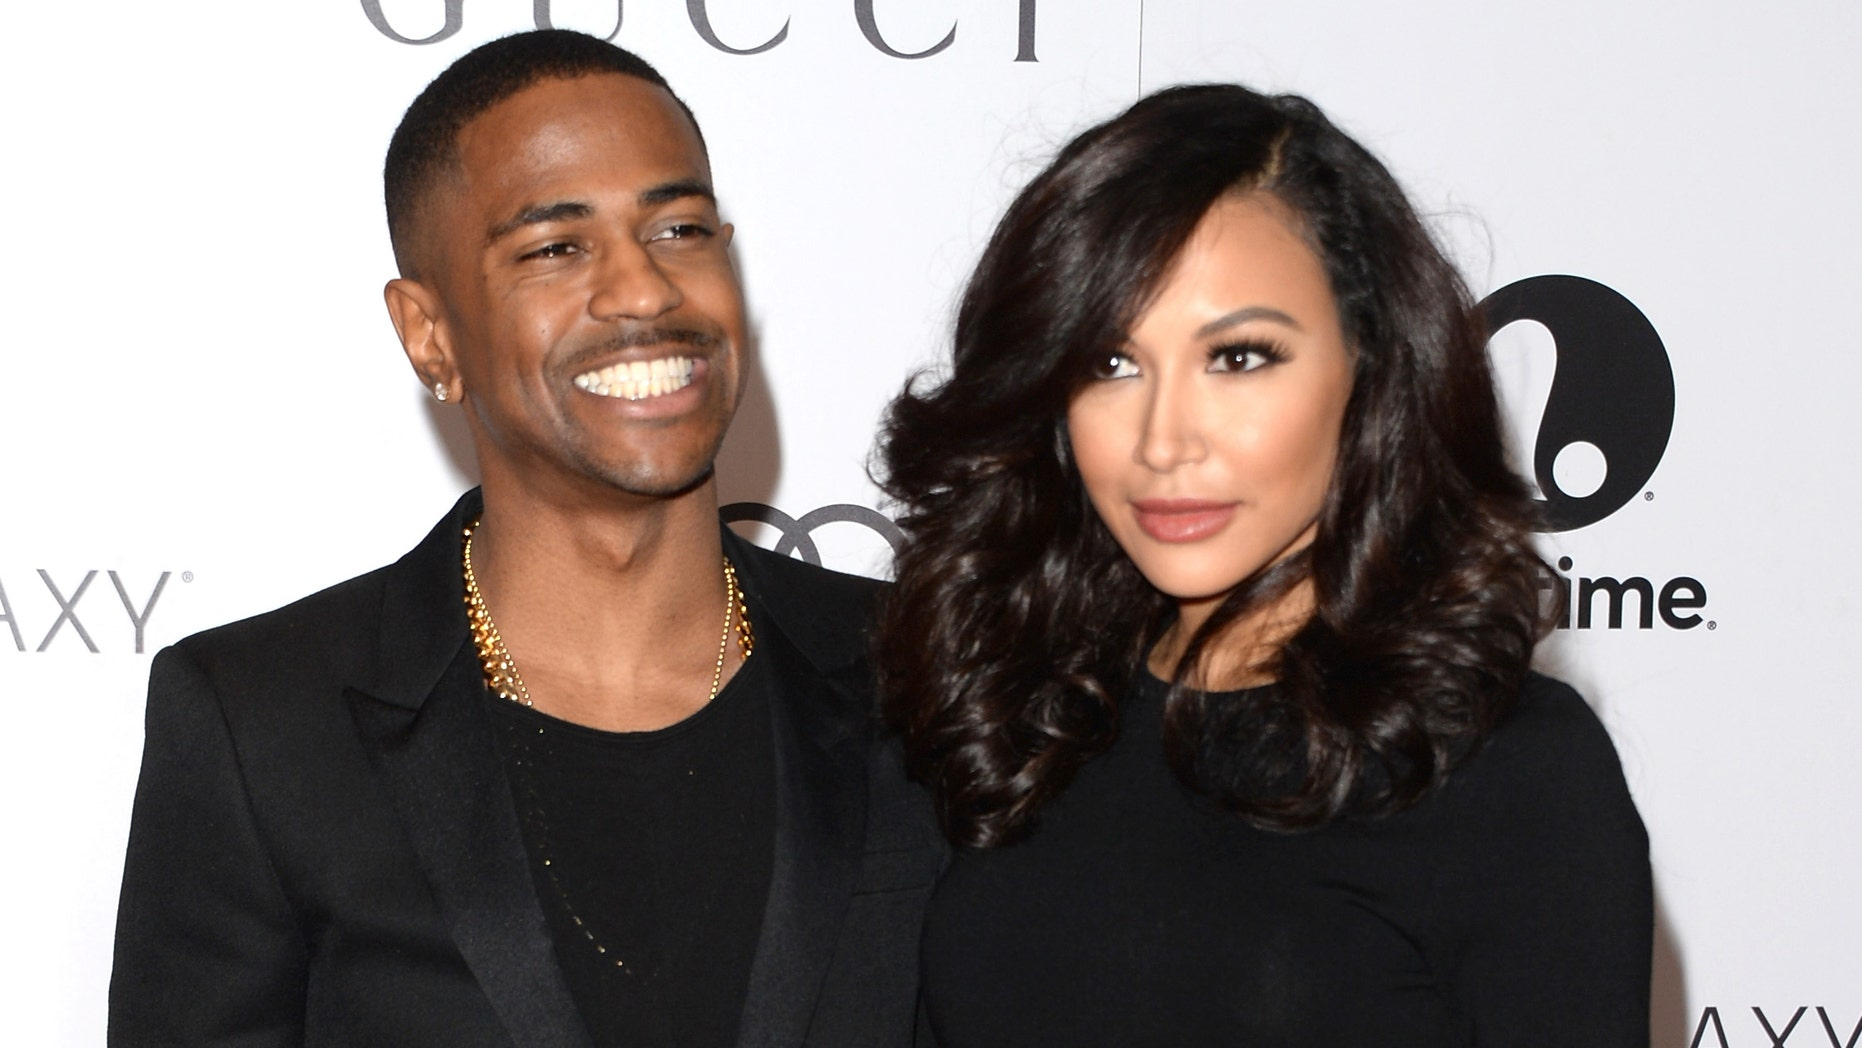 Big Sean and Naya Rivera at Beverly Hills Hotel on December 11, 2013 in Beverly Hills, California.